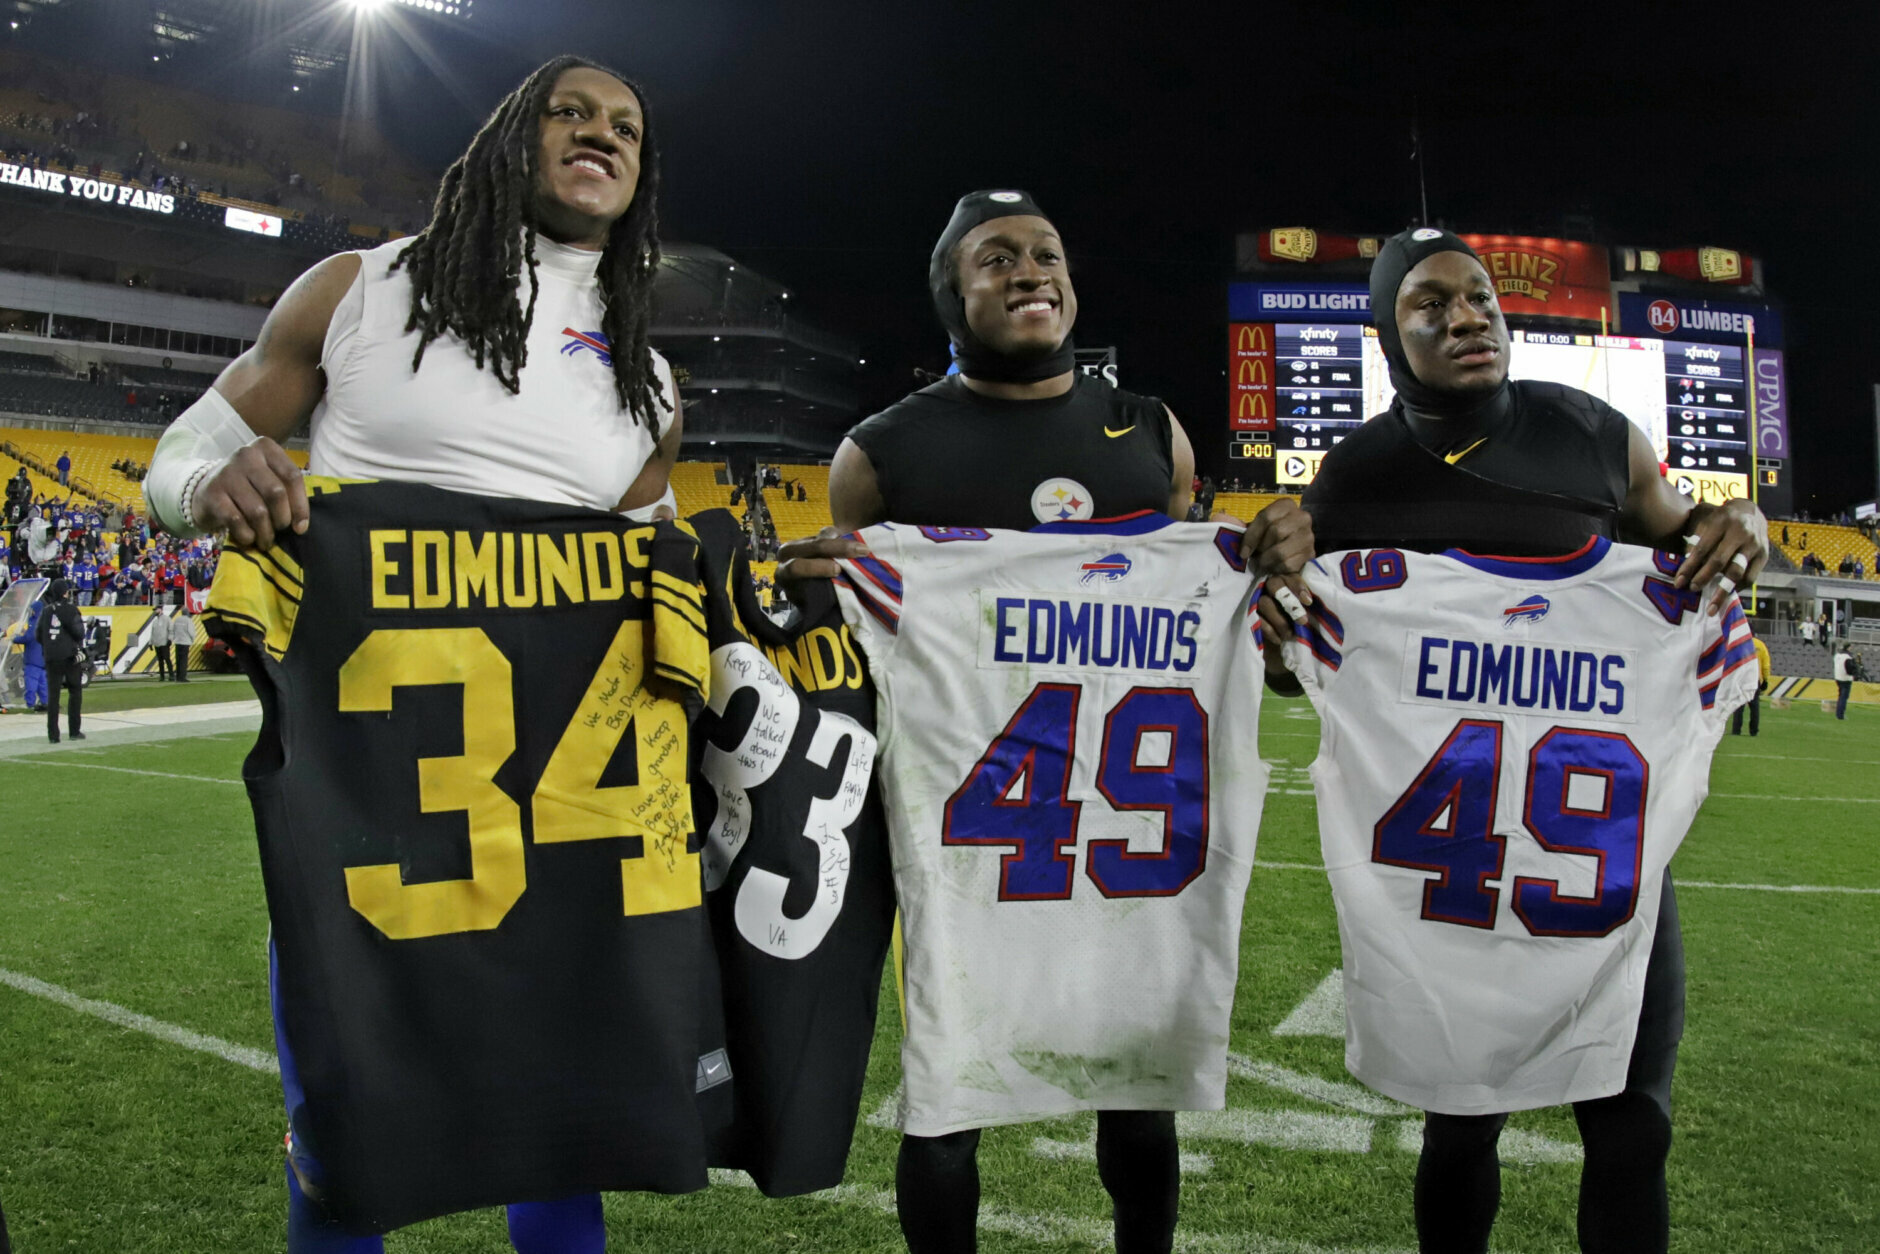 "<p><b><i>Bills 17</i></b><br /> <b><i>Steelers 10</i></b></p> <p>Buffalo, in just their second appearance on Sunday Night Football and first since 2007, clinched its second playoff berth in three years and first 10-win season in 20 years. But that wasn&#8217;t the biggest drought that ended in Pittsburgh: <a href=""https://profootballtalk.nbcsports.com/2019/12/11/edmunds-brothers-will-be-first-brother-trio-to-play-in-same-nfl-game-since-1927/"" target=""_blank"" rel=""noopener"">The Edmunds brothers&#8217; family reunion</a> was the first of its kind in 92 years and one of <a href=""https://www.wgrz.com/article/sports/edmunds-brothers-make-nfl-history-as-they-face-each-other-on-sunday-night-football/"" target=""_blank"" rel=""noopener"">the greatest stories</a> of the weekend.</p>"